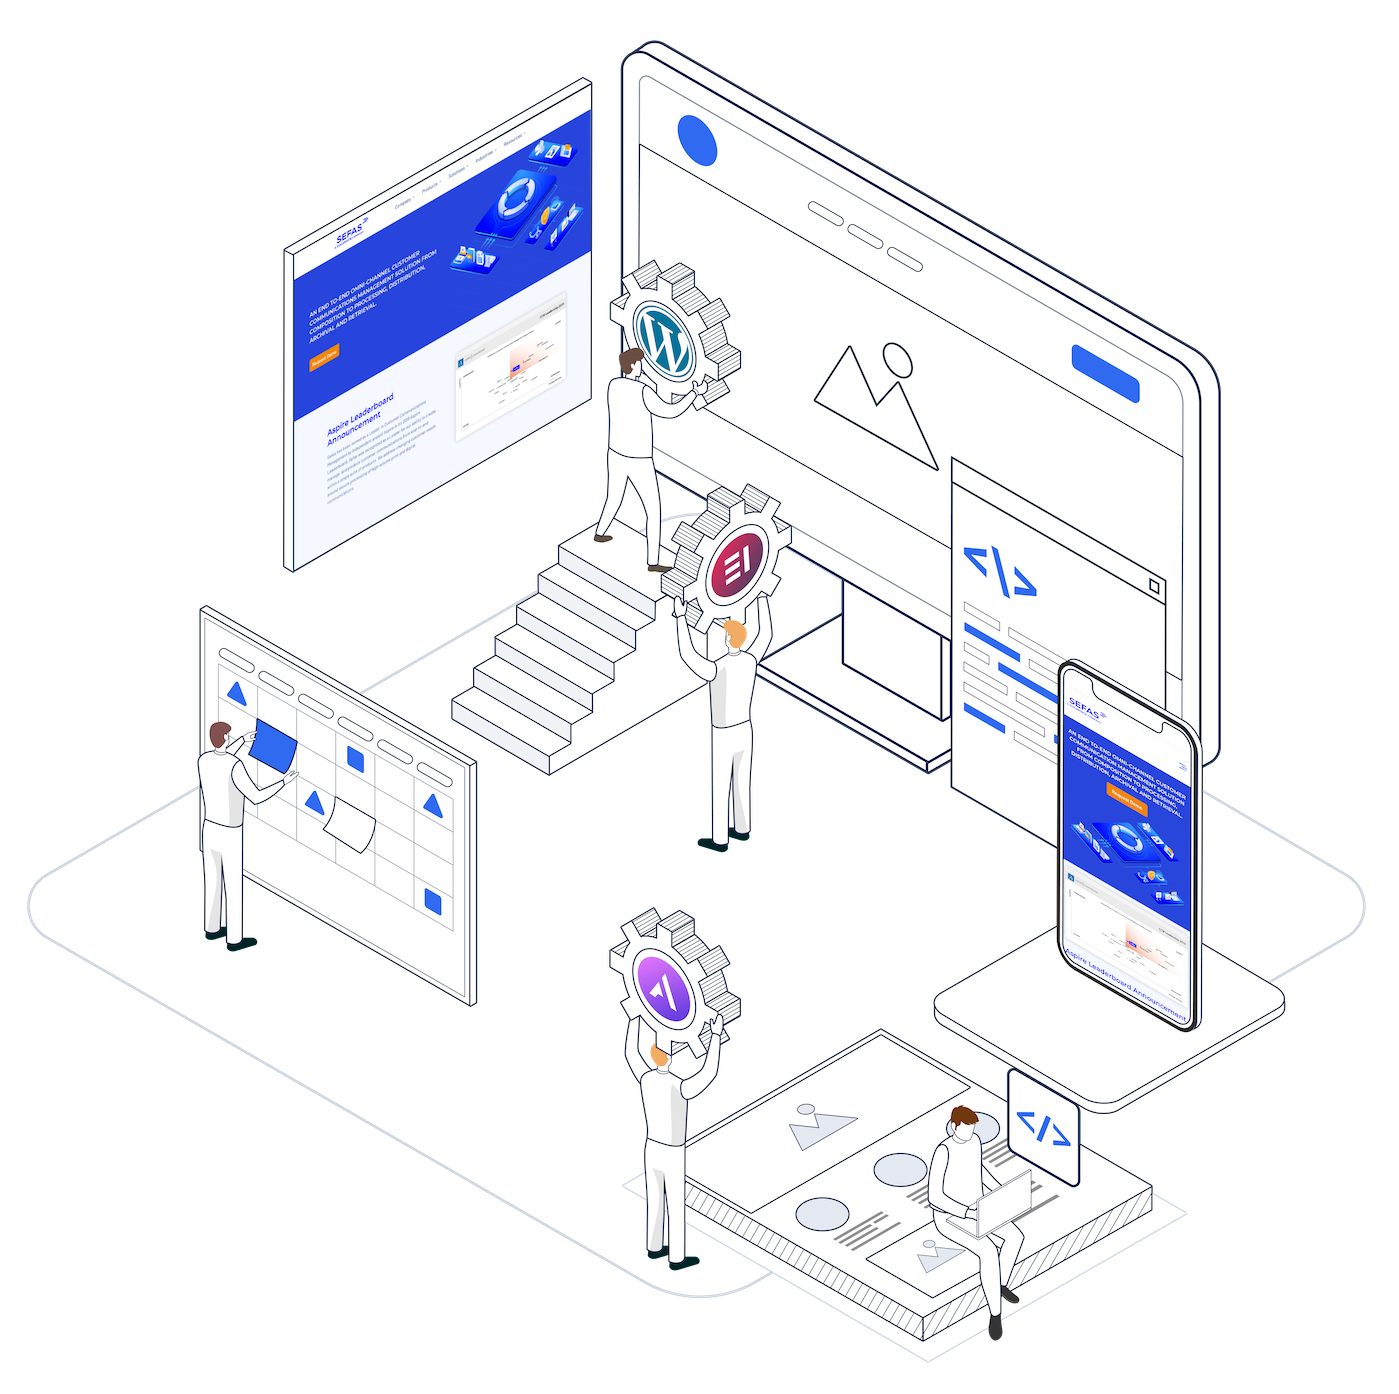 web design process illustration